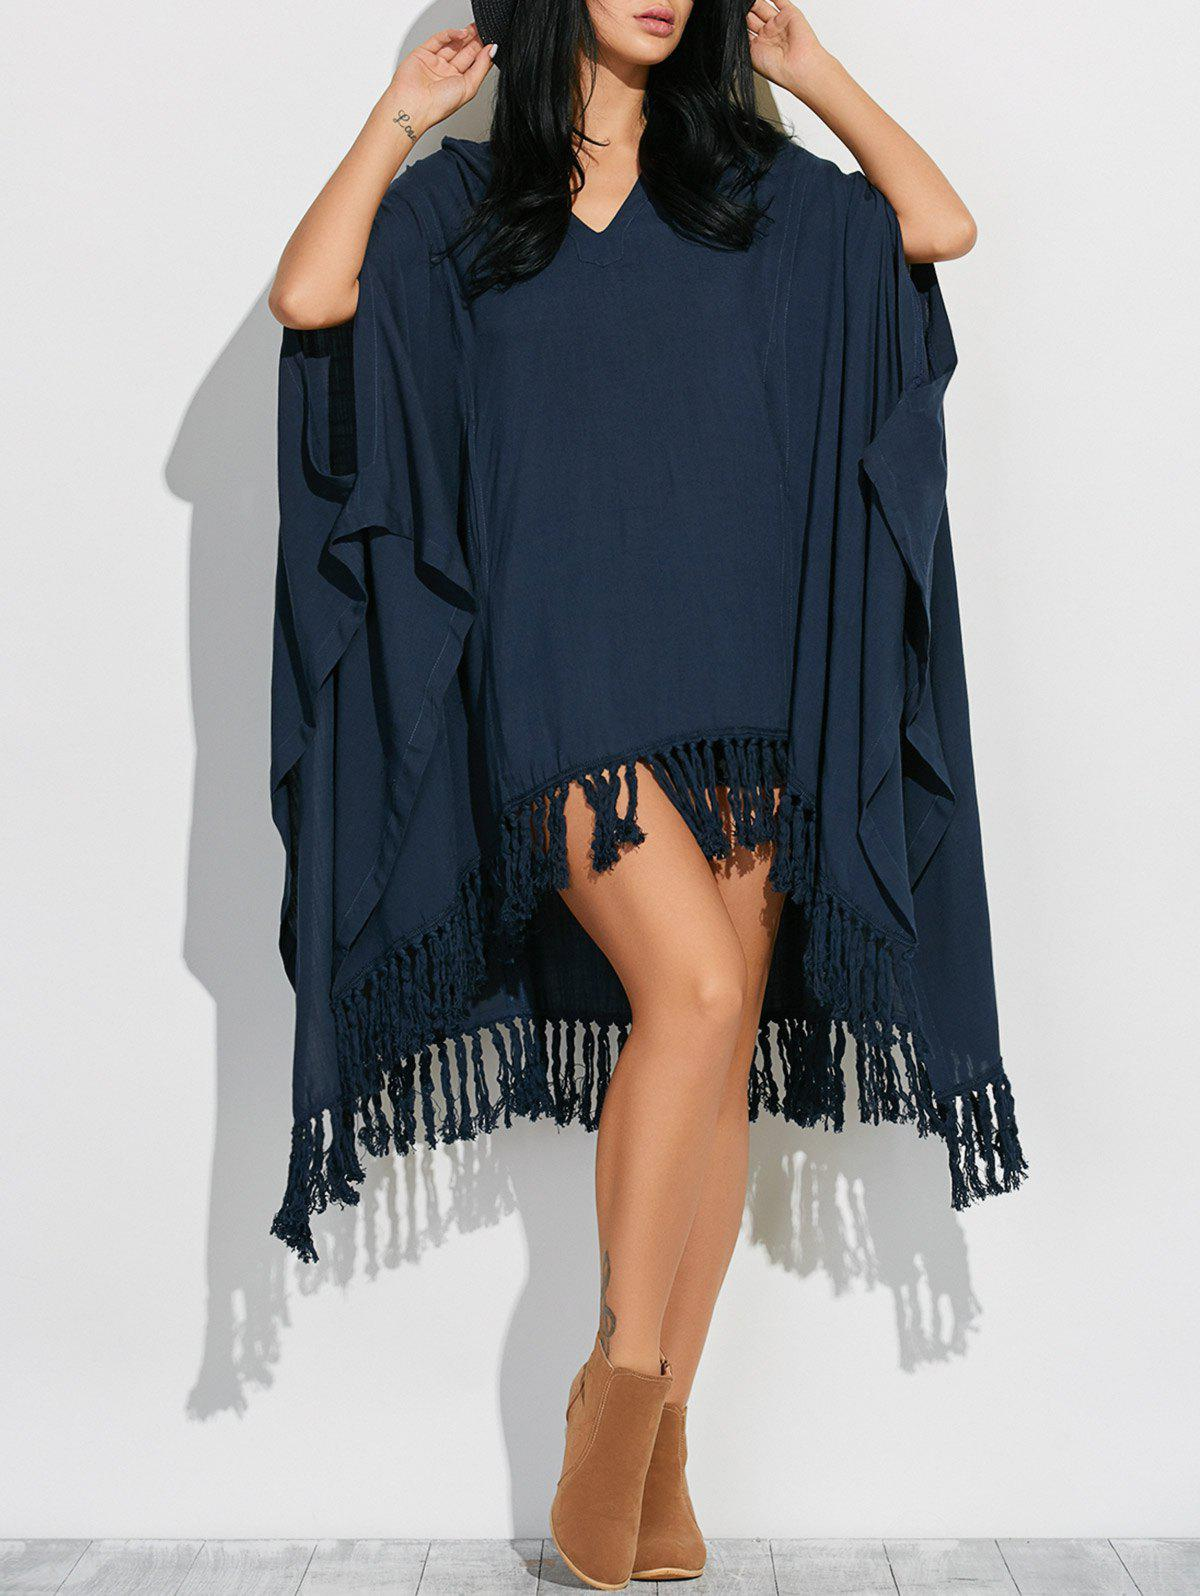 Side Slit Hooded Caped Poncho Dress - CADETBLUE S